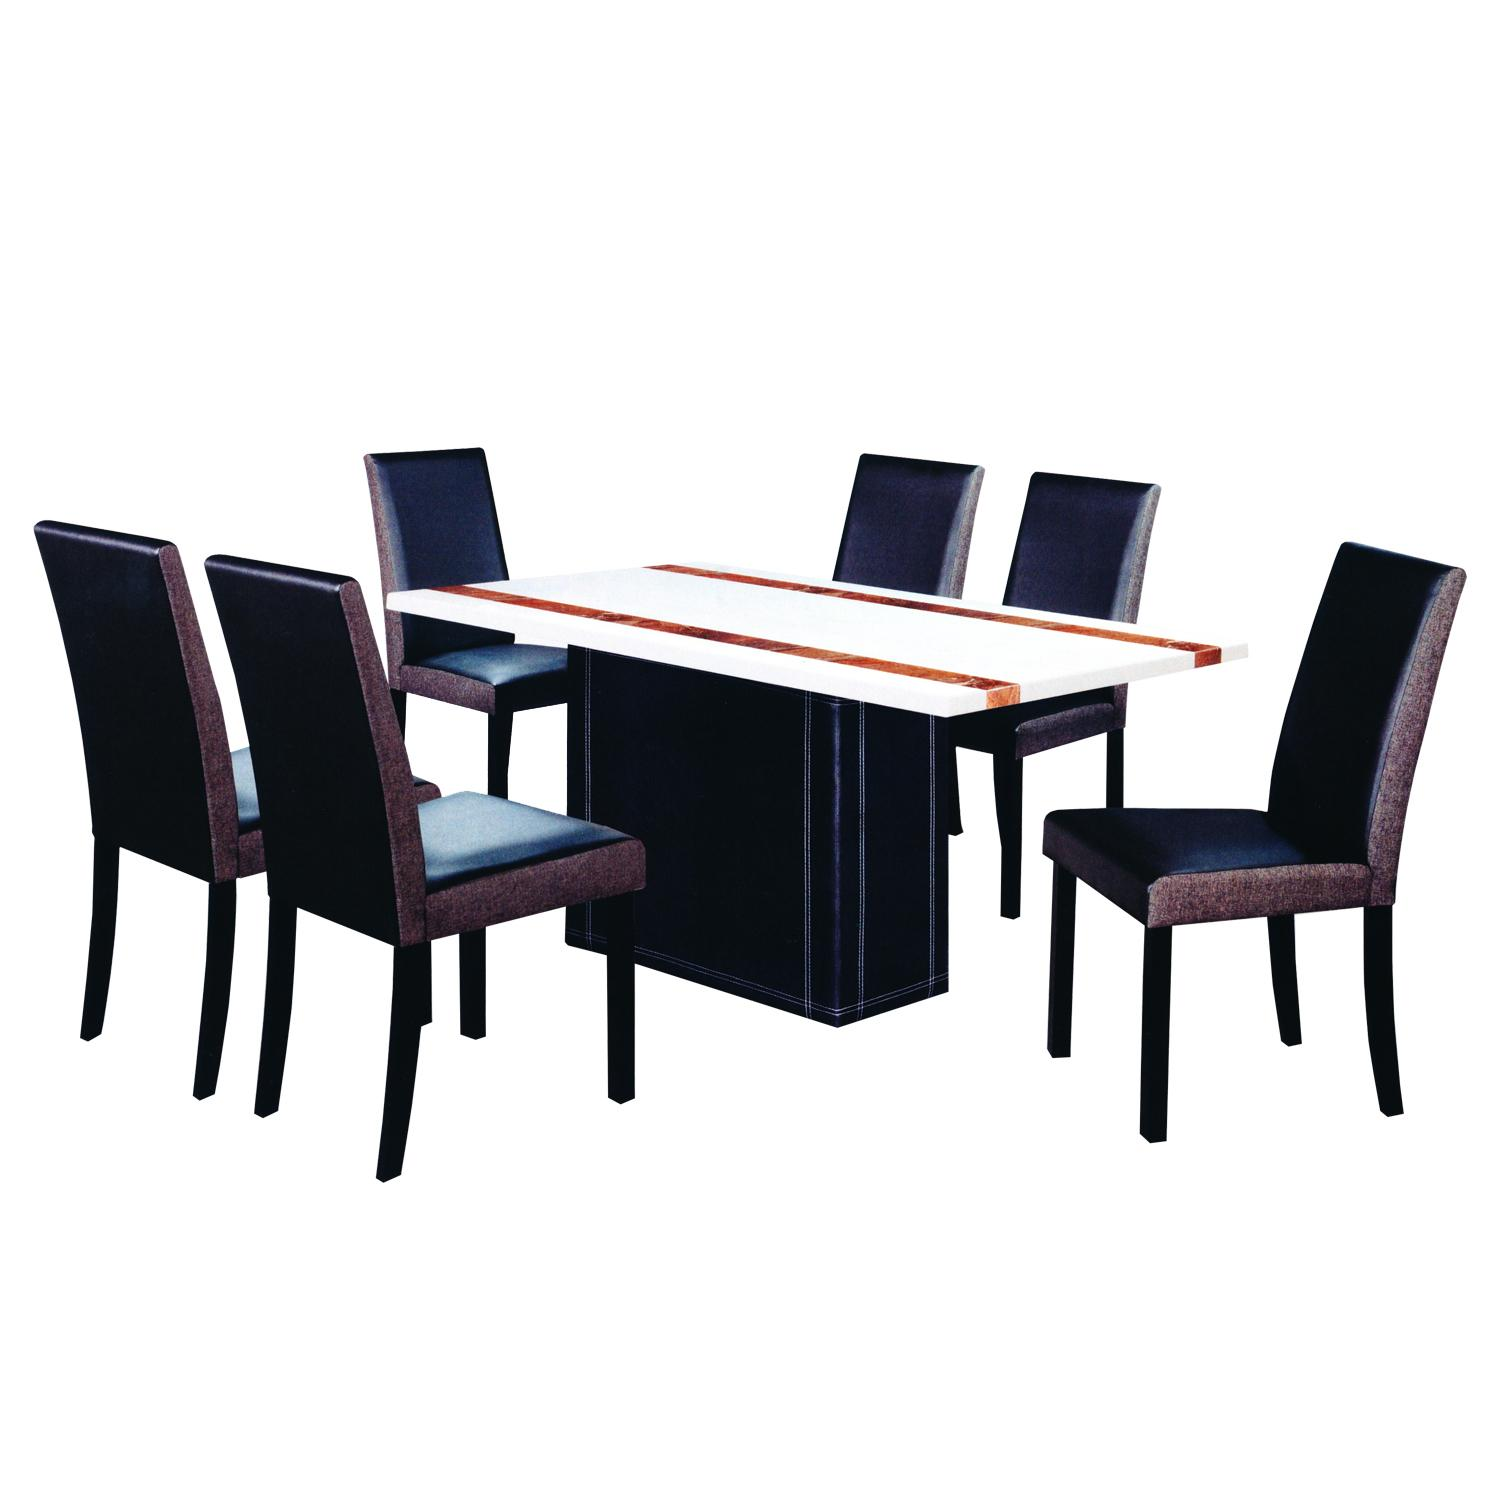 LIVING MALL_Liza Dining Set 1+6_FREE DELIVERY